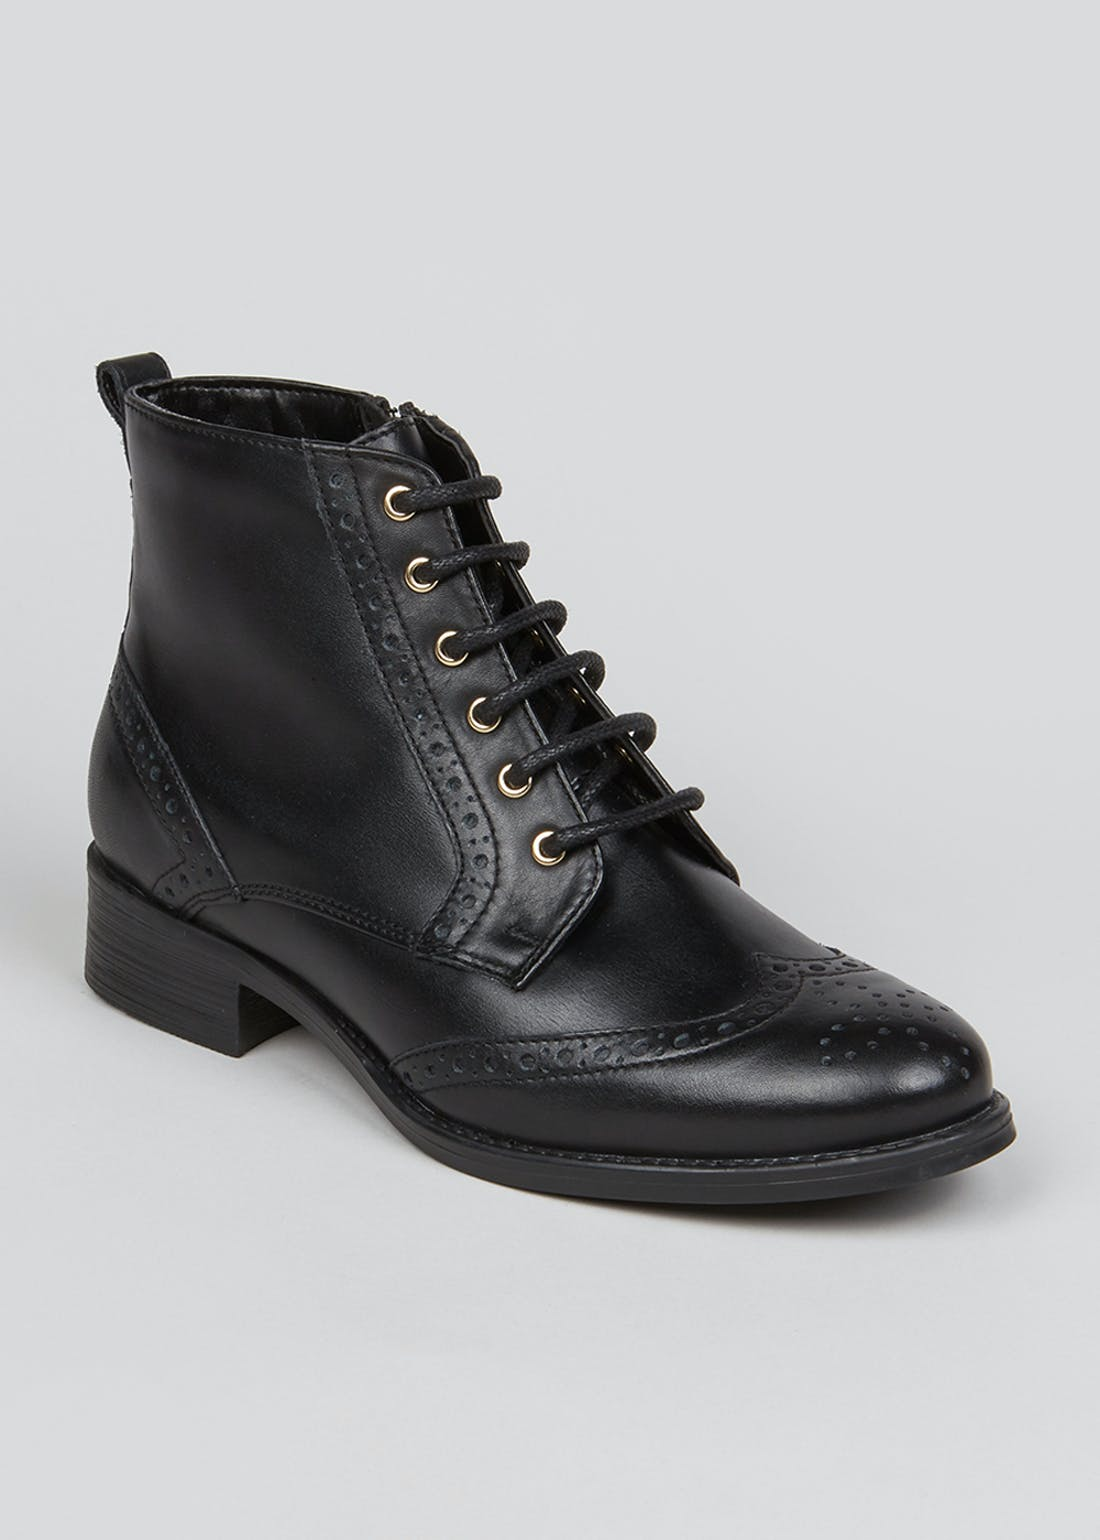 Soleflex Black Real Leather Brogue Boots